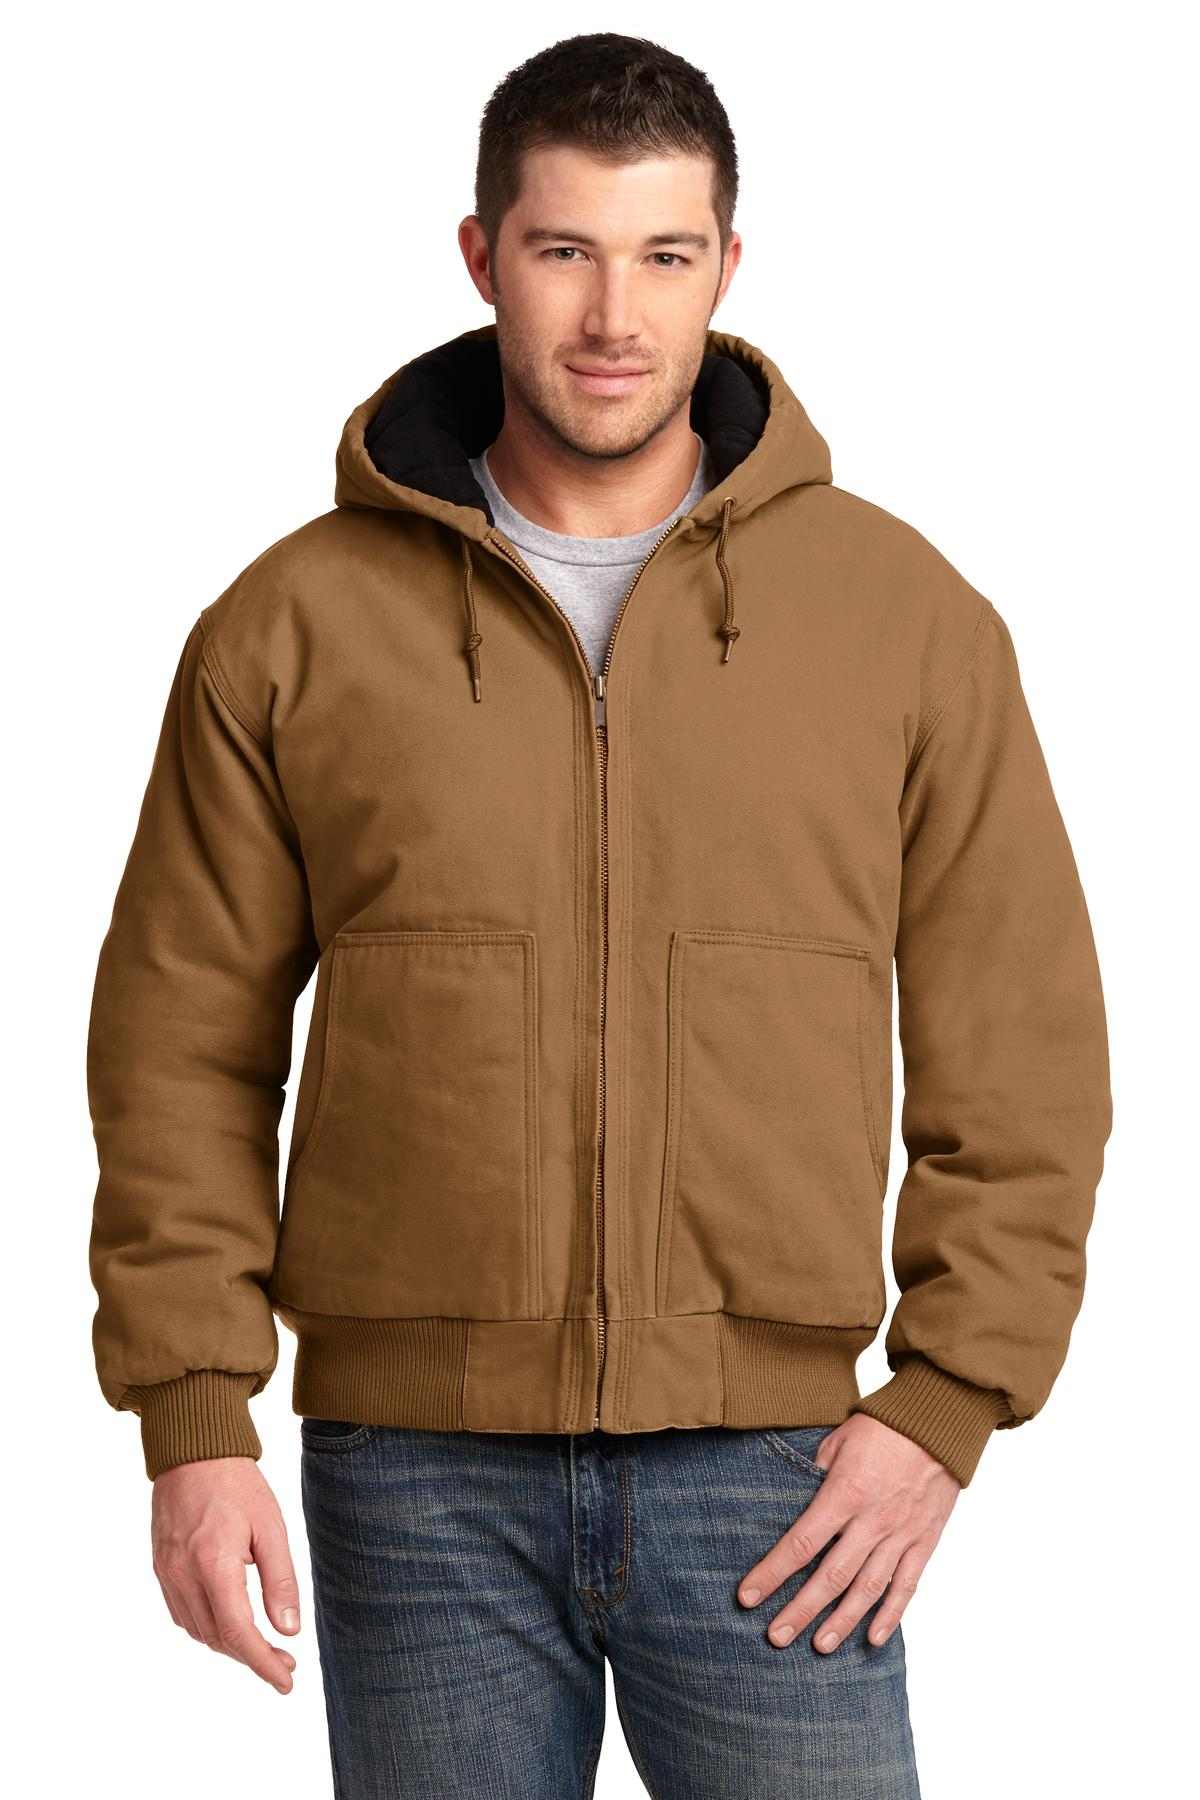 CornerStone Washed Duck Cloth Insulated Hooded Work Jacket